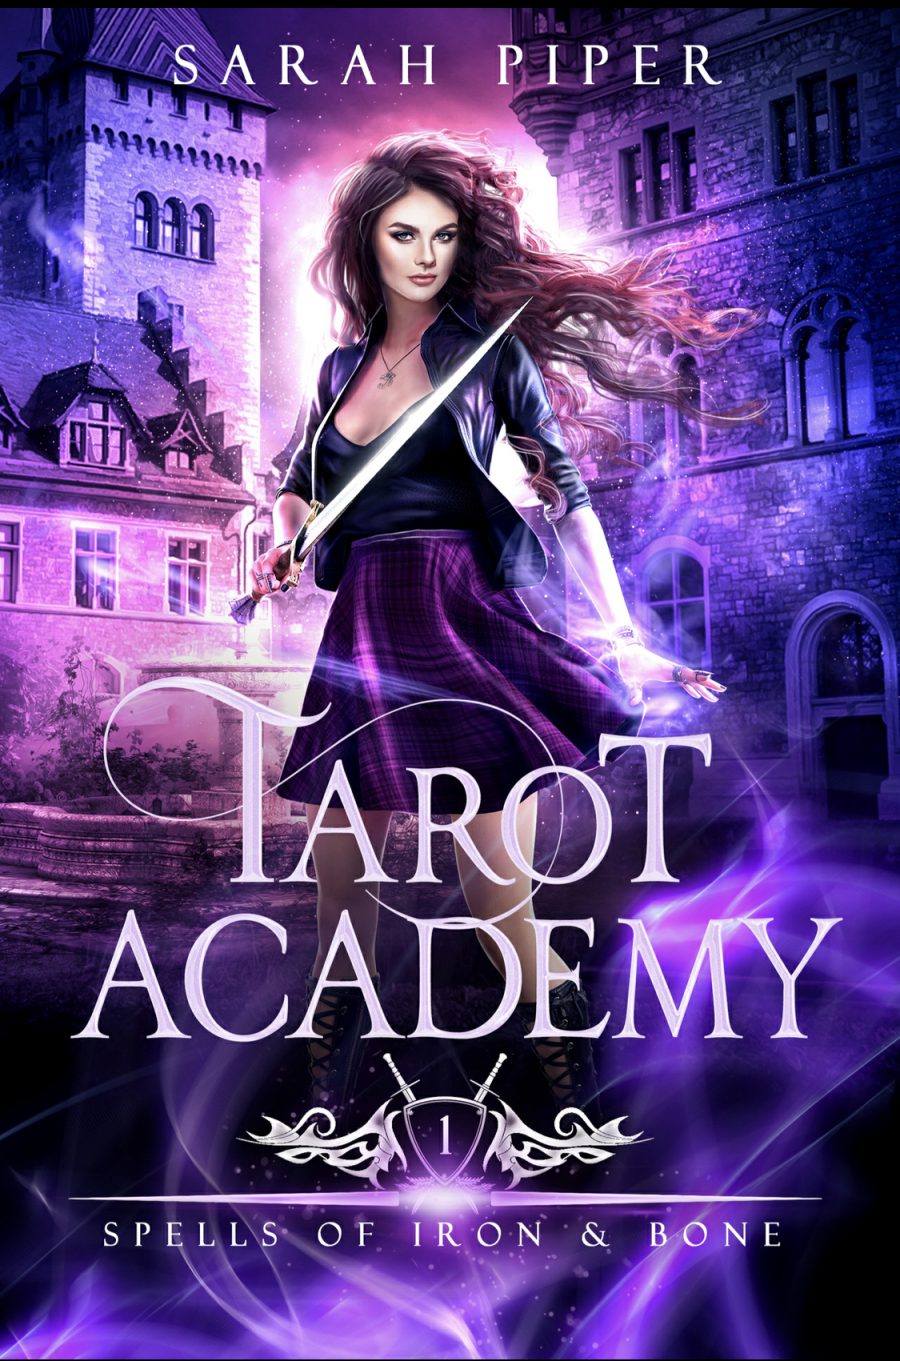 Spells of Iron and Bone (Tarot Academy - Book 1) by Sarah Piper - A Book Review #BookReview #SlowBurn #RH #ReverseHarem #Academy #PNR #4Stars #KindleUnlimited #KU #WhyChoose